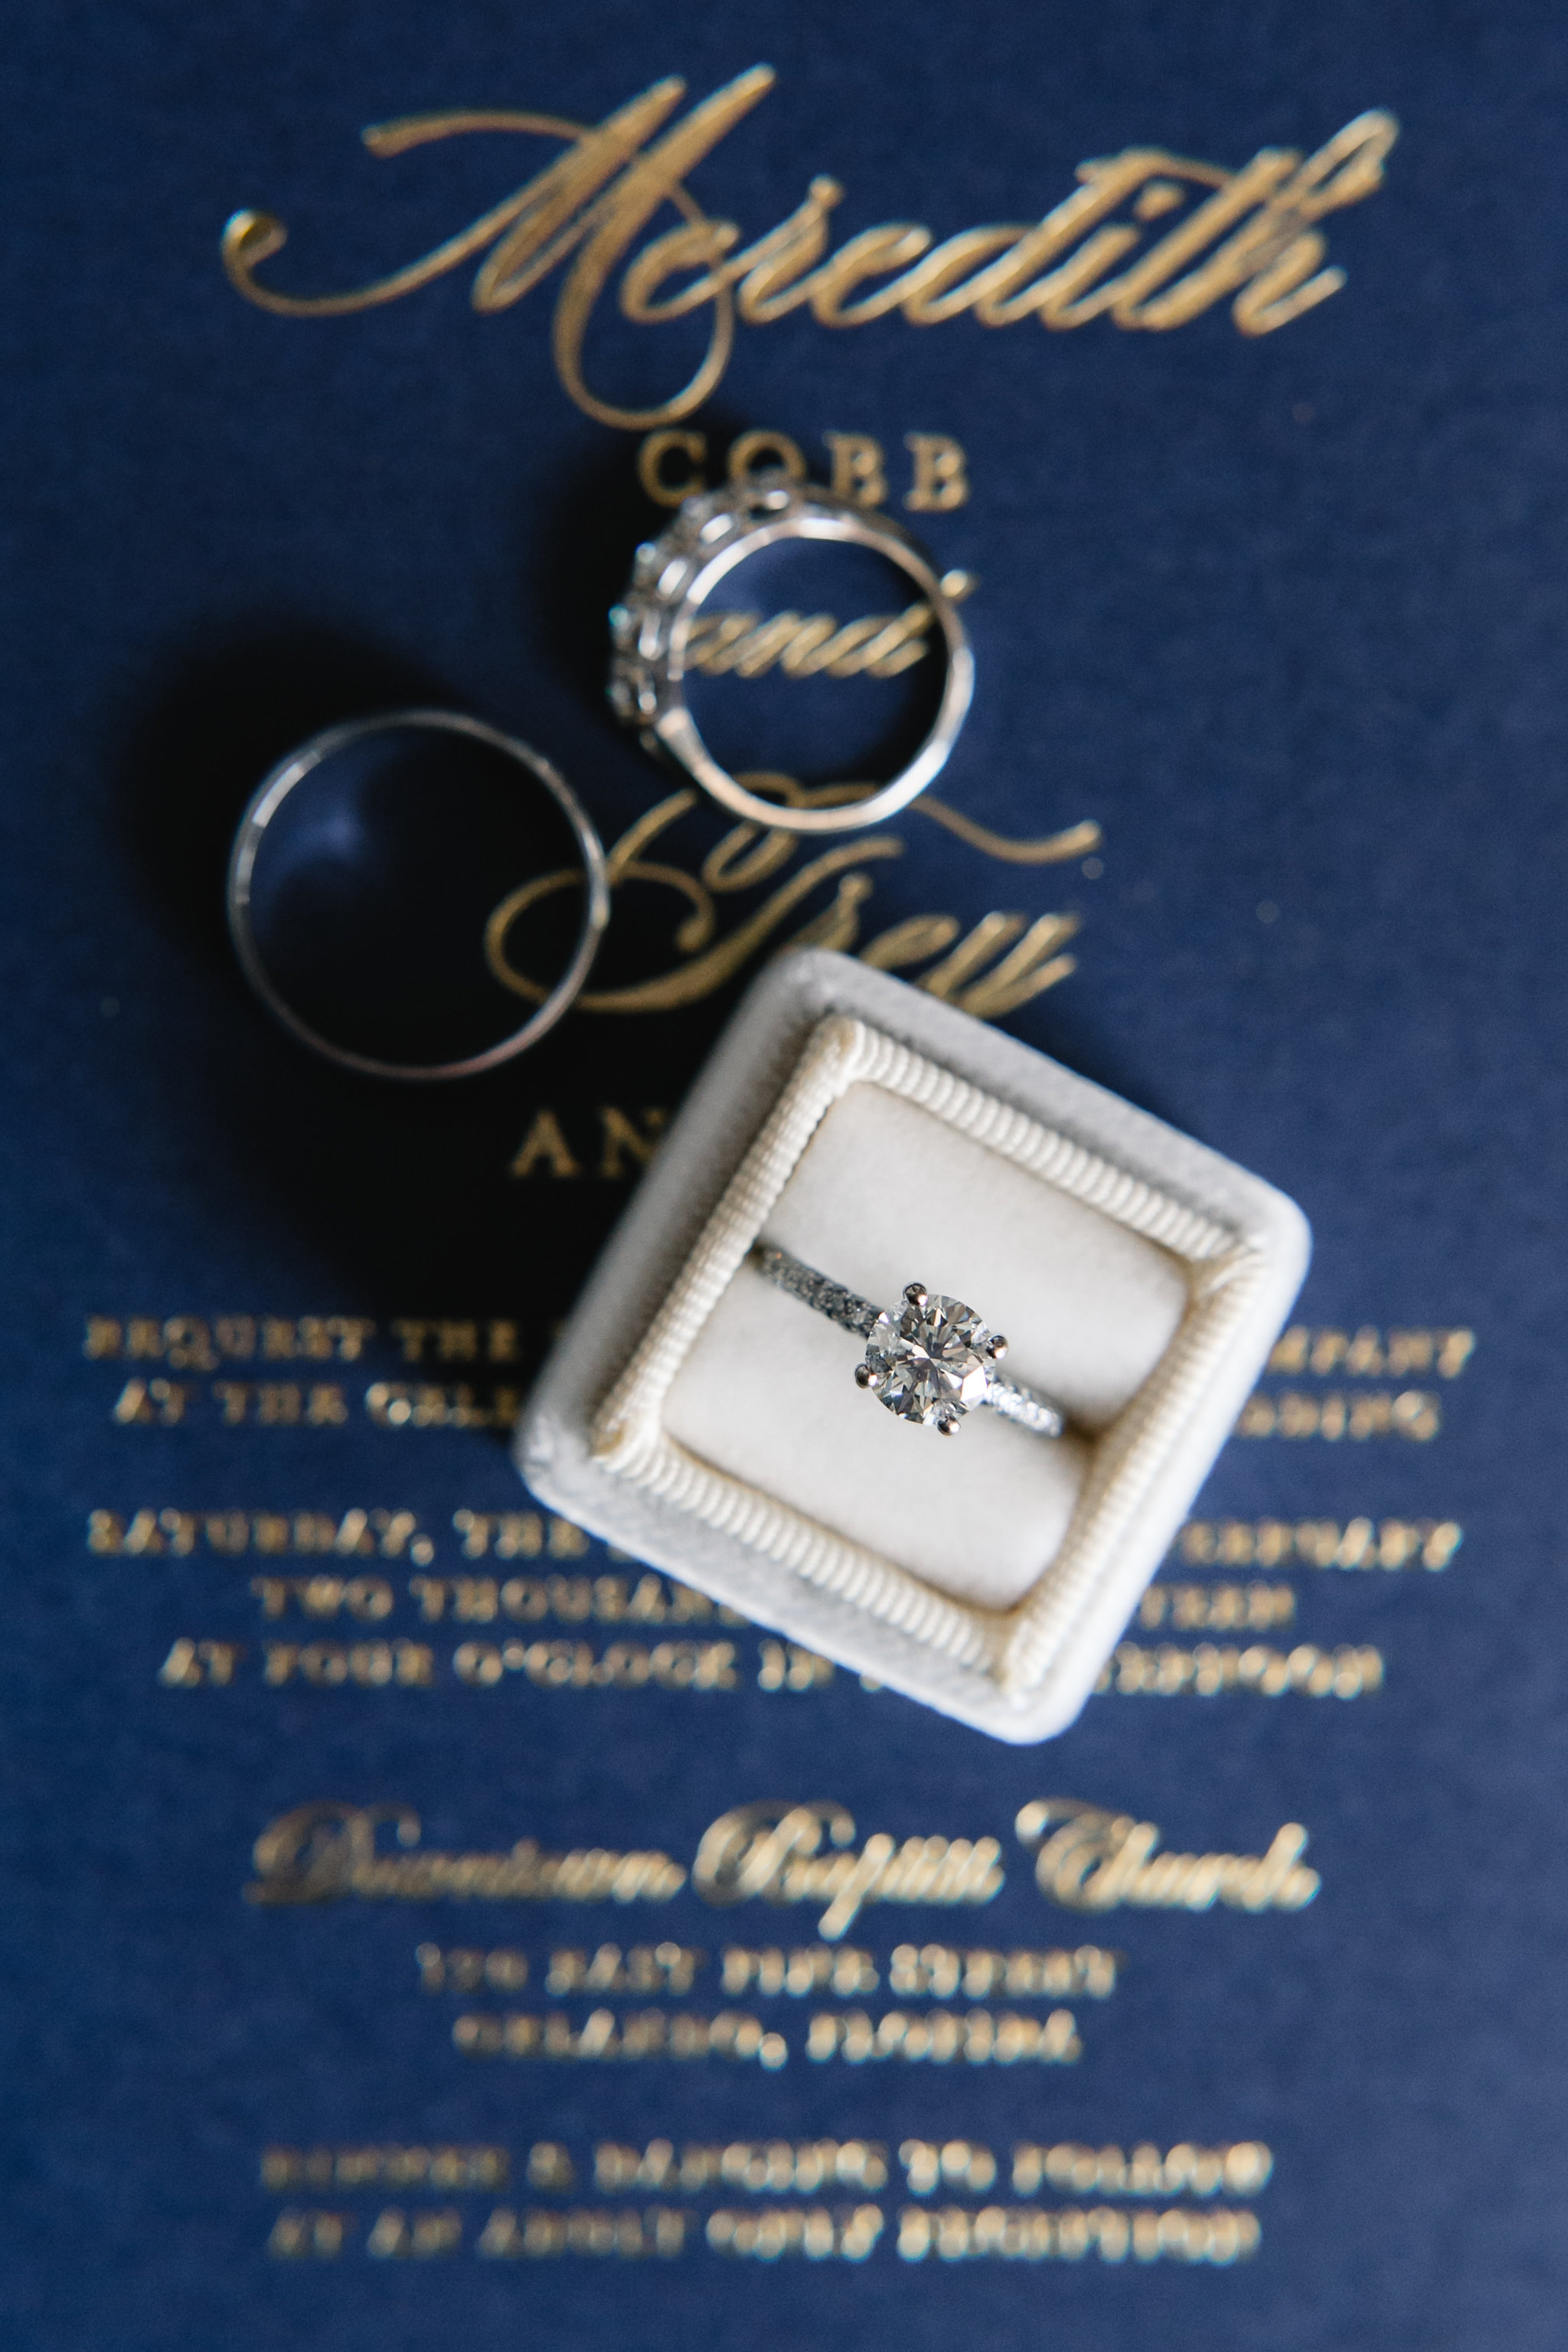 Styled detail picture of wedding rings with wedding details, Downtown wedding